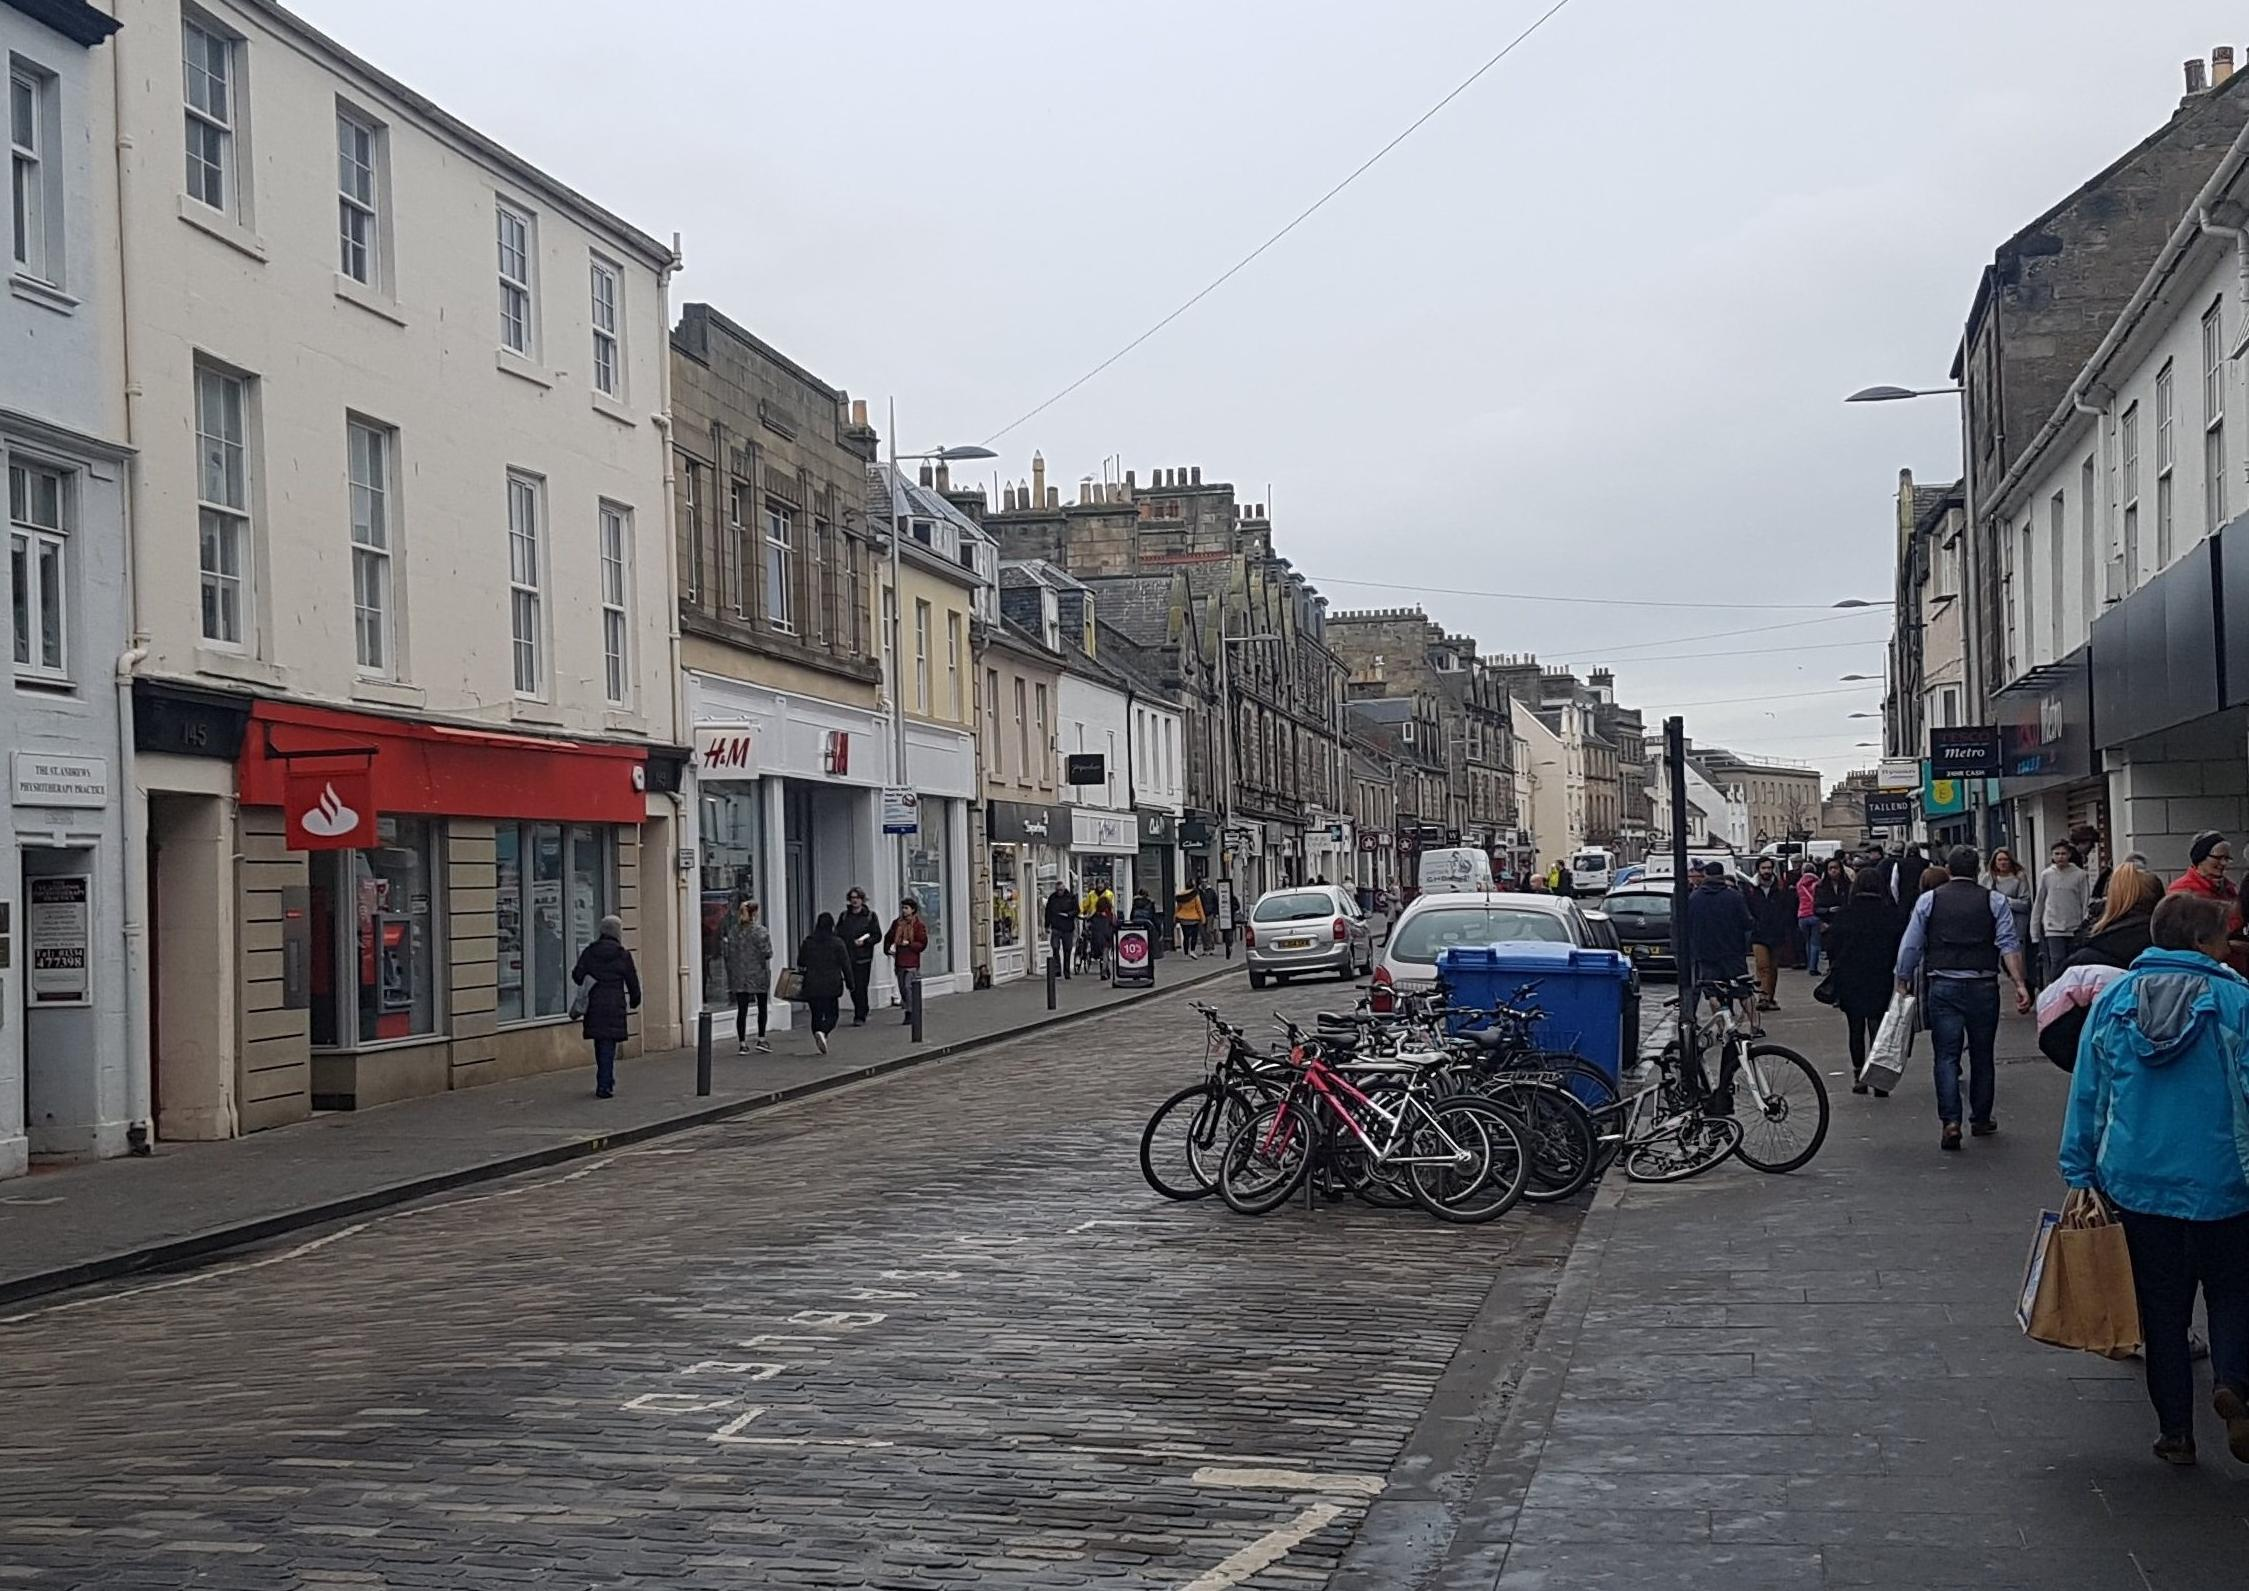 Fife Council drops controversial plans to close main streets to vehicles in Fife town